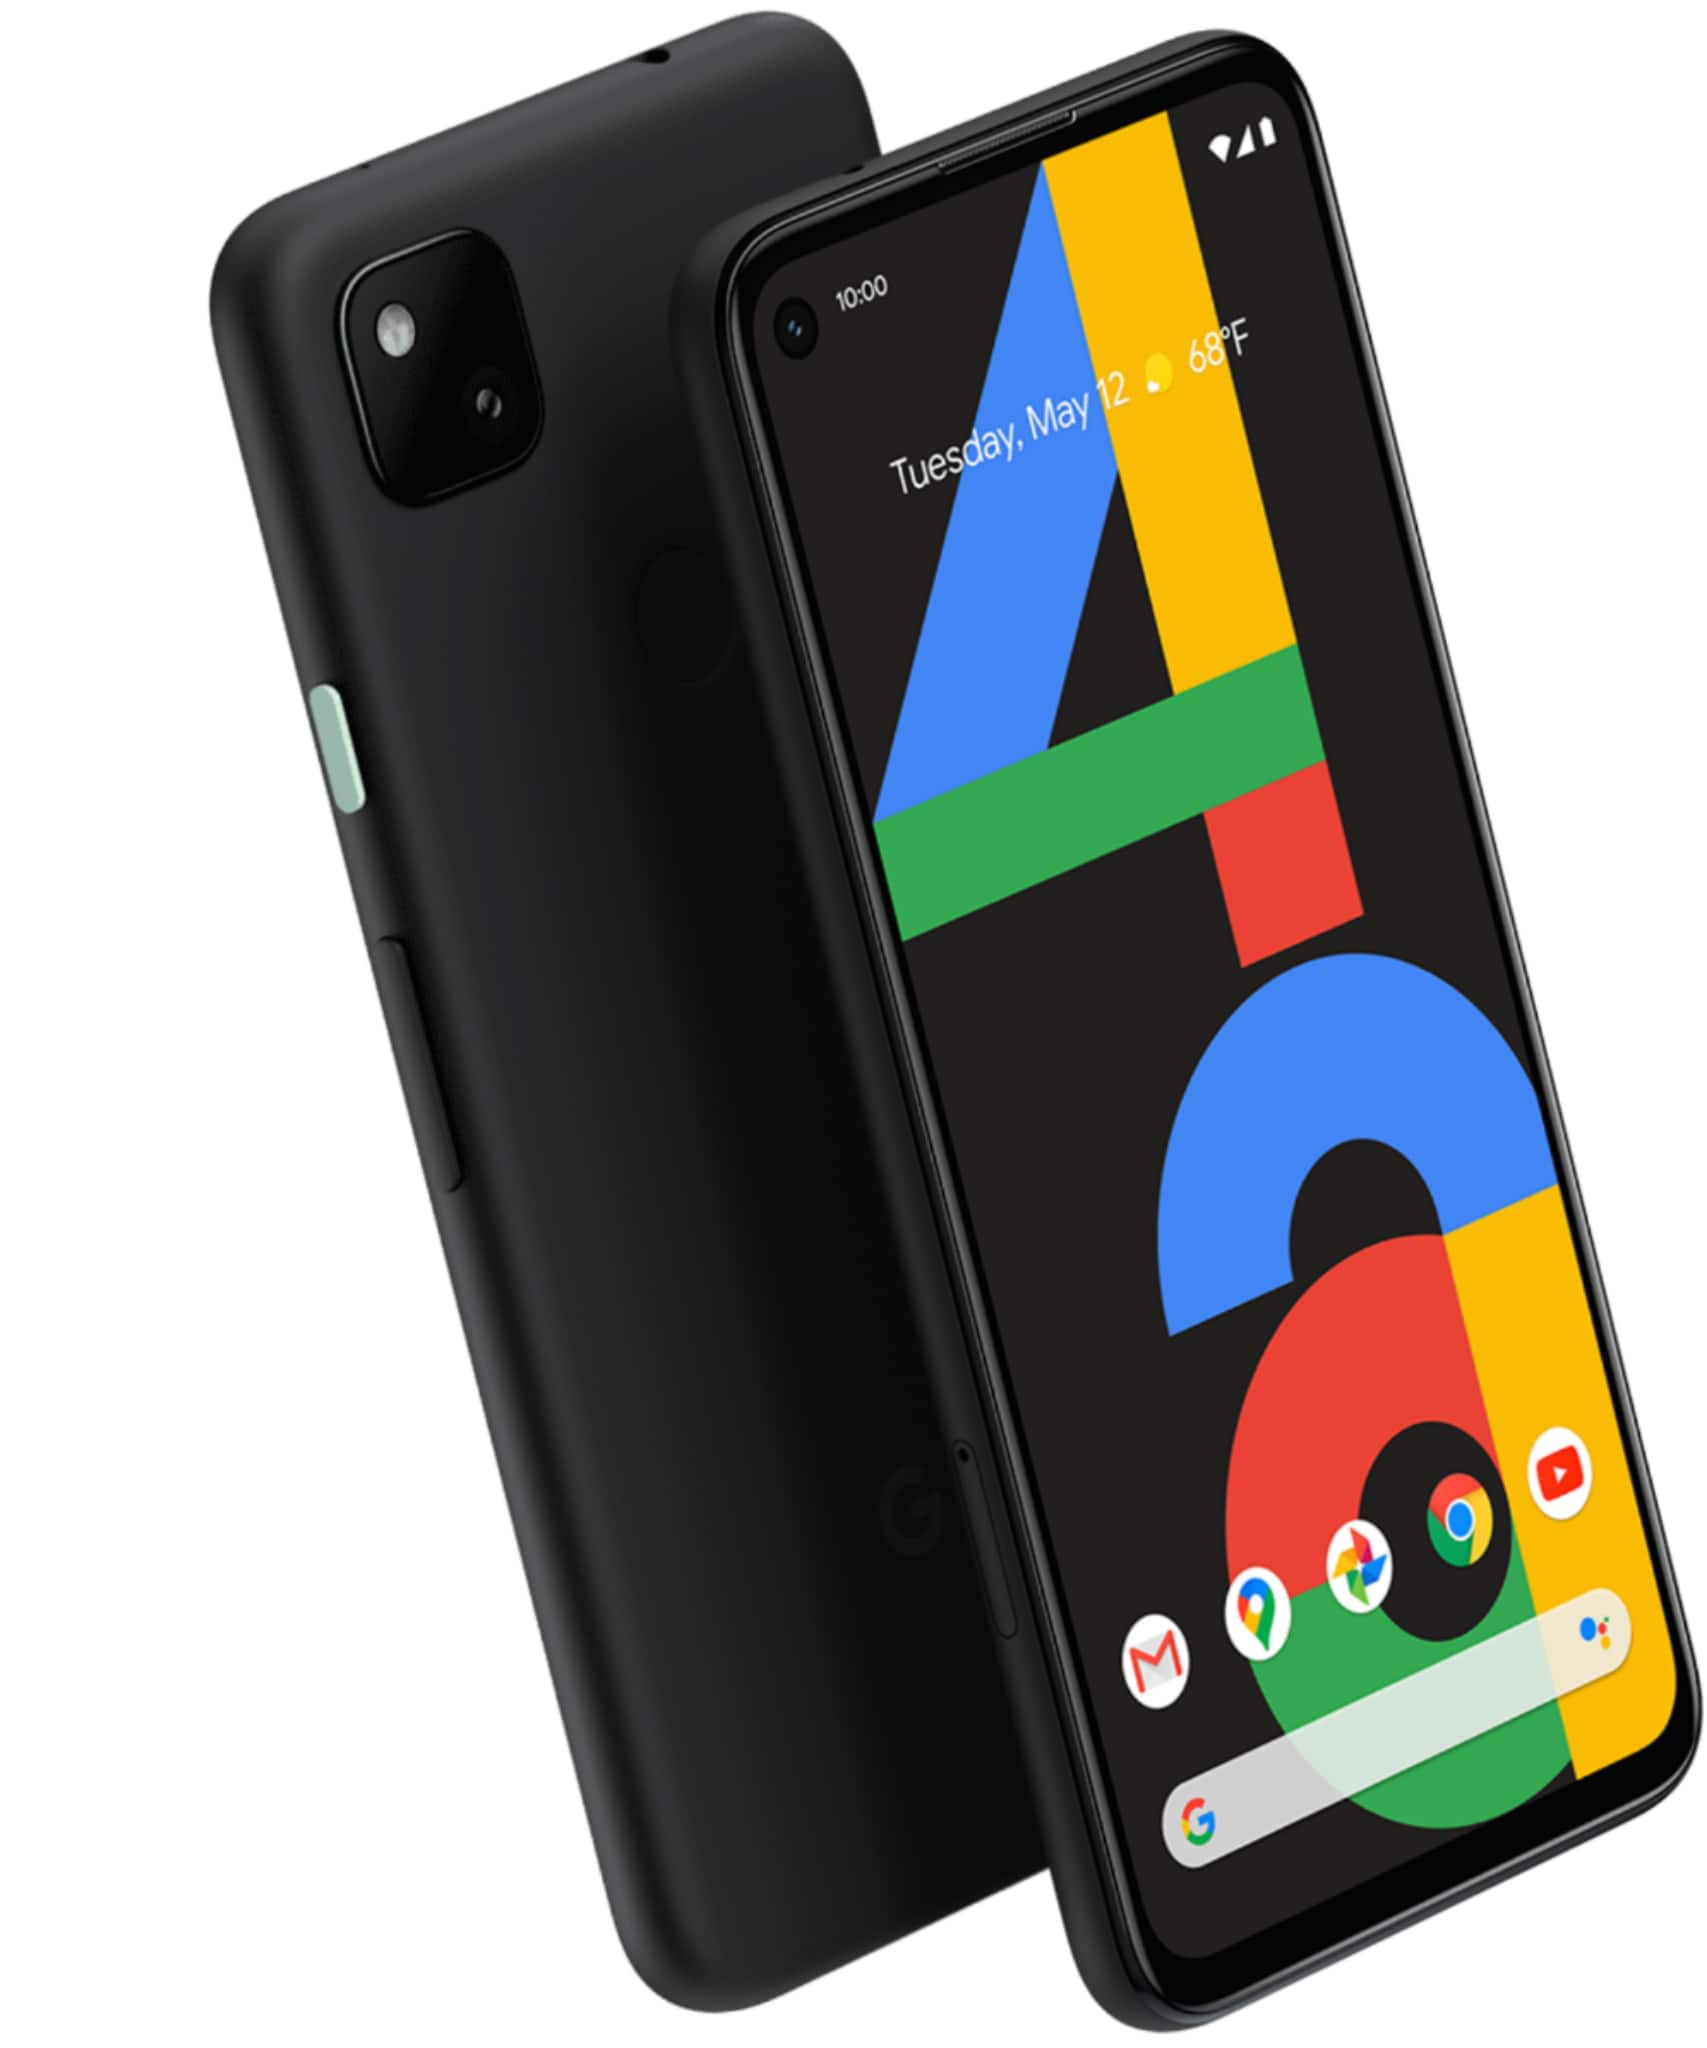 Google Store: Pixel 4a Pre-order $349 + Free Shipping + Google One members on certain plans get up to 10% back on eligible Google Store purchases in the form of Google Store credit